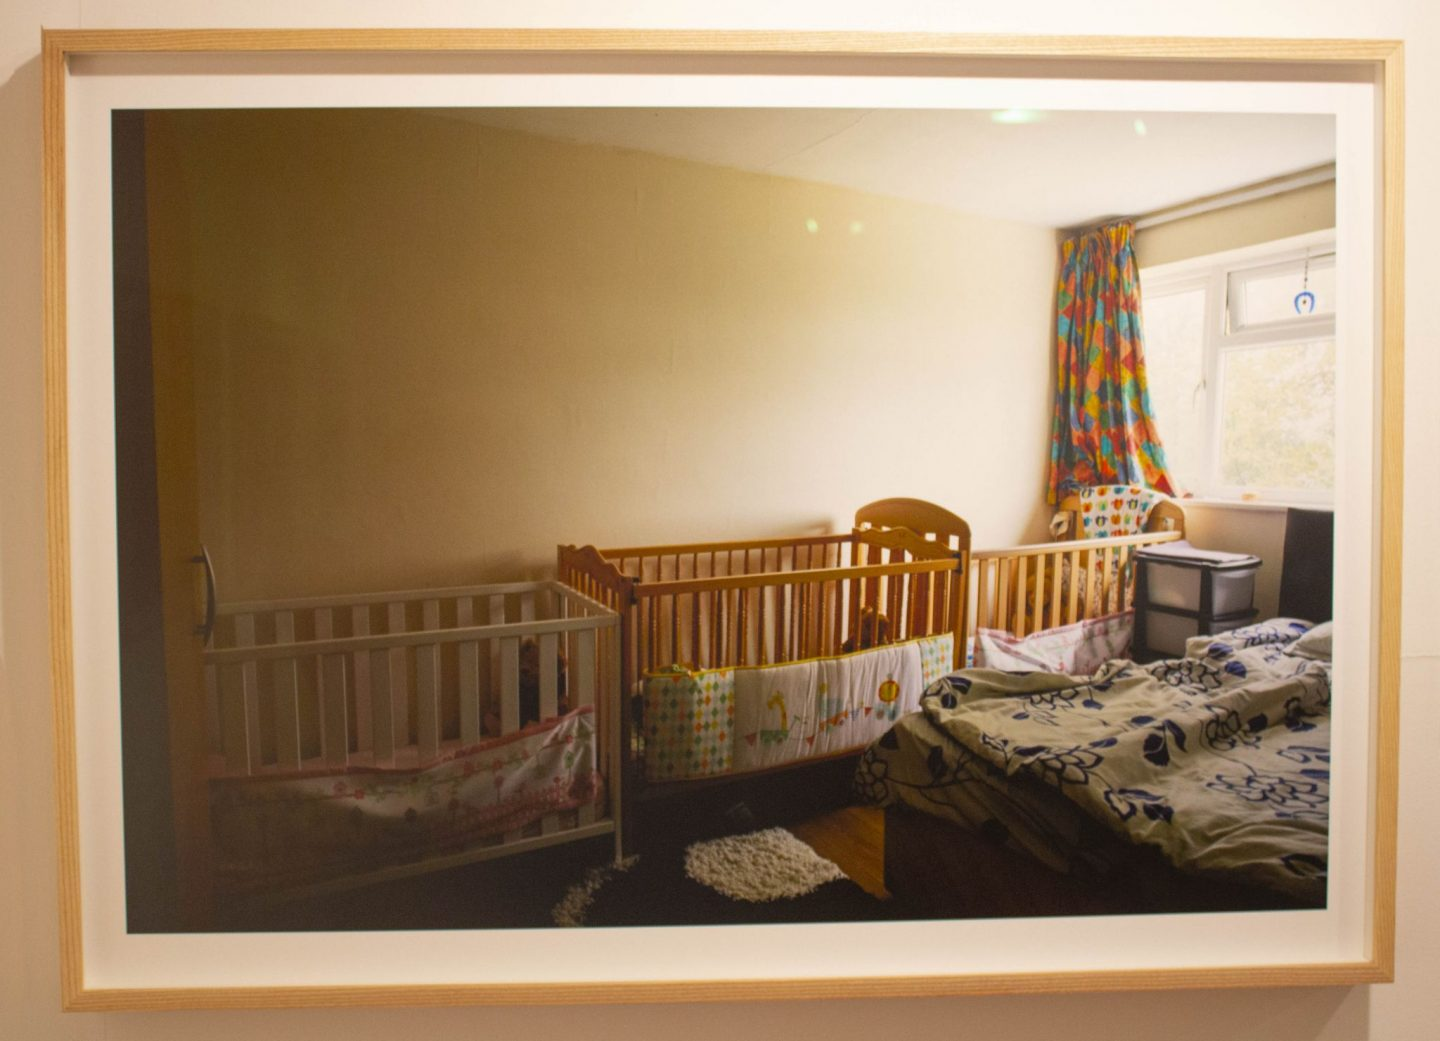 The Foundling Museum, Coram, Foundling Museum, Bedrooms of London, poverty, London, poverty in London, austerity, dadbloguk, dadbloguk.com, dad blog uk, The Childhood Trust